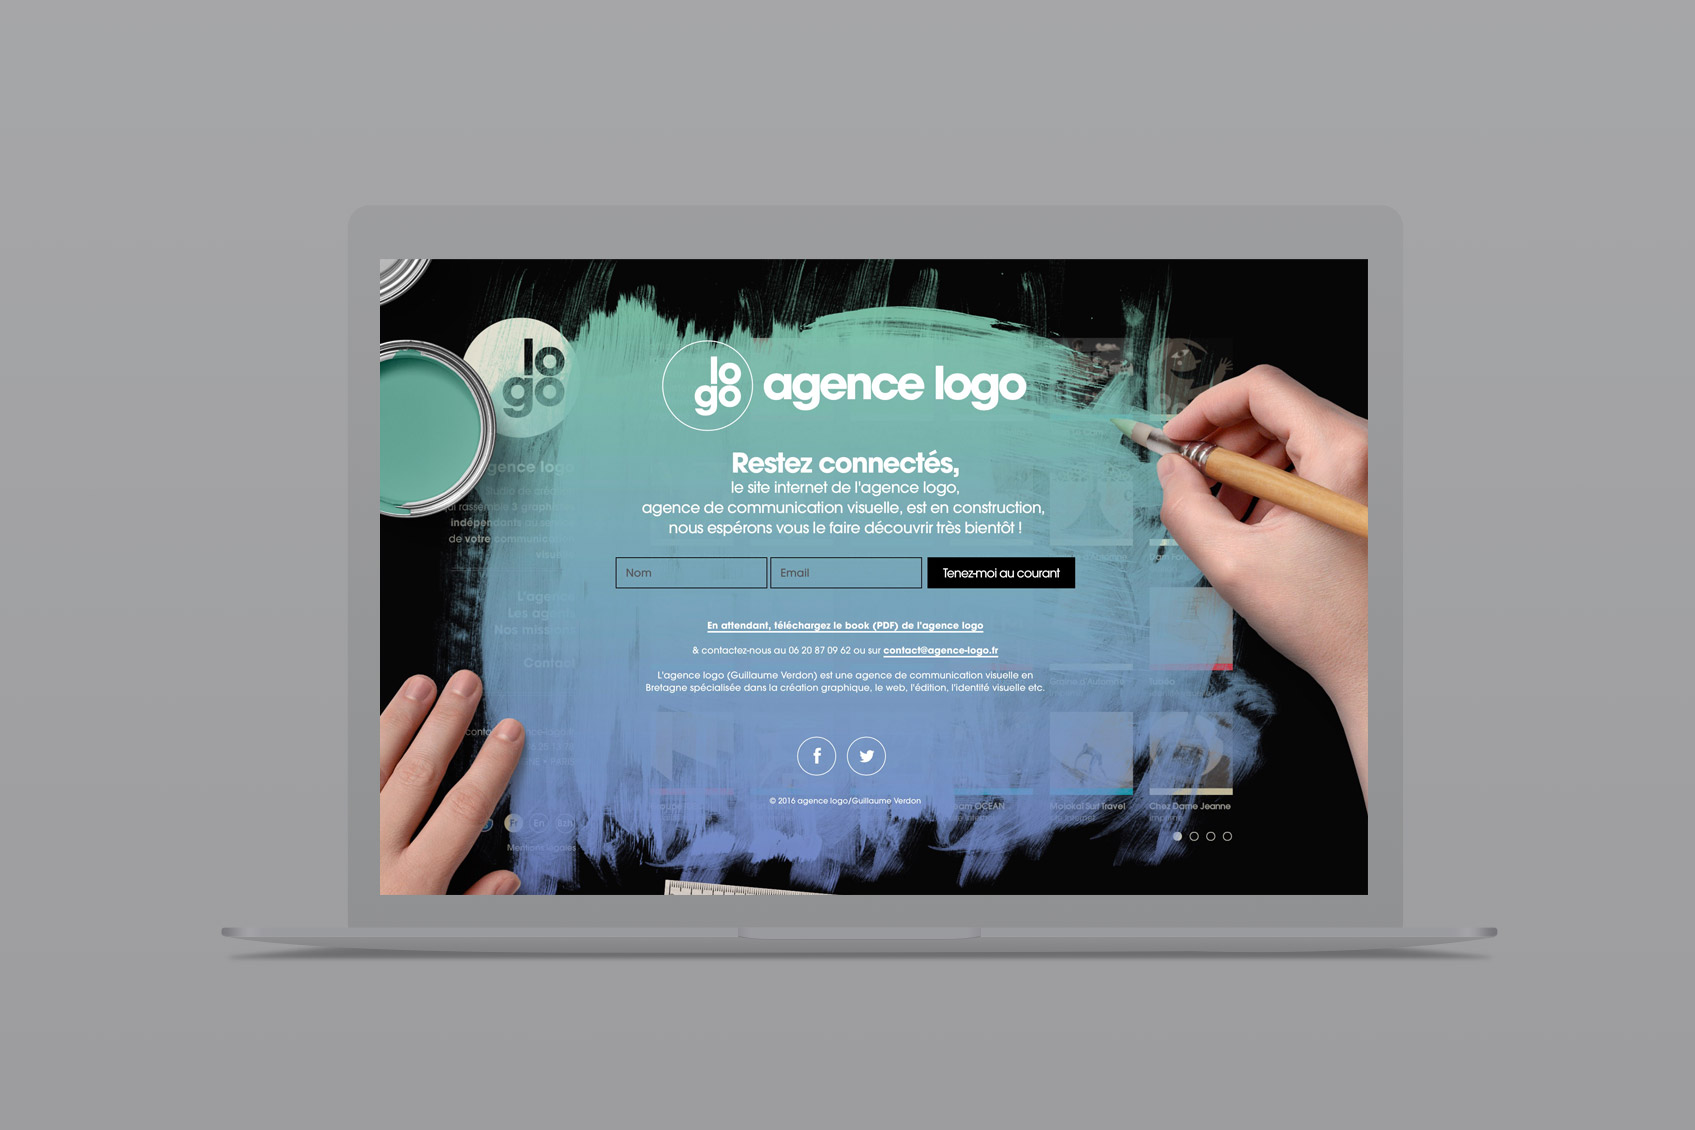 agence de communication visuelle - page coming soon